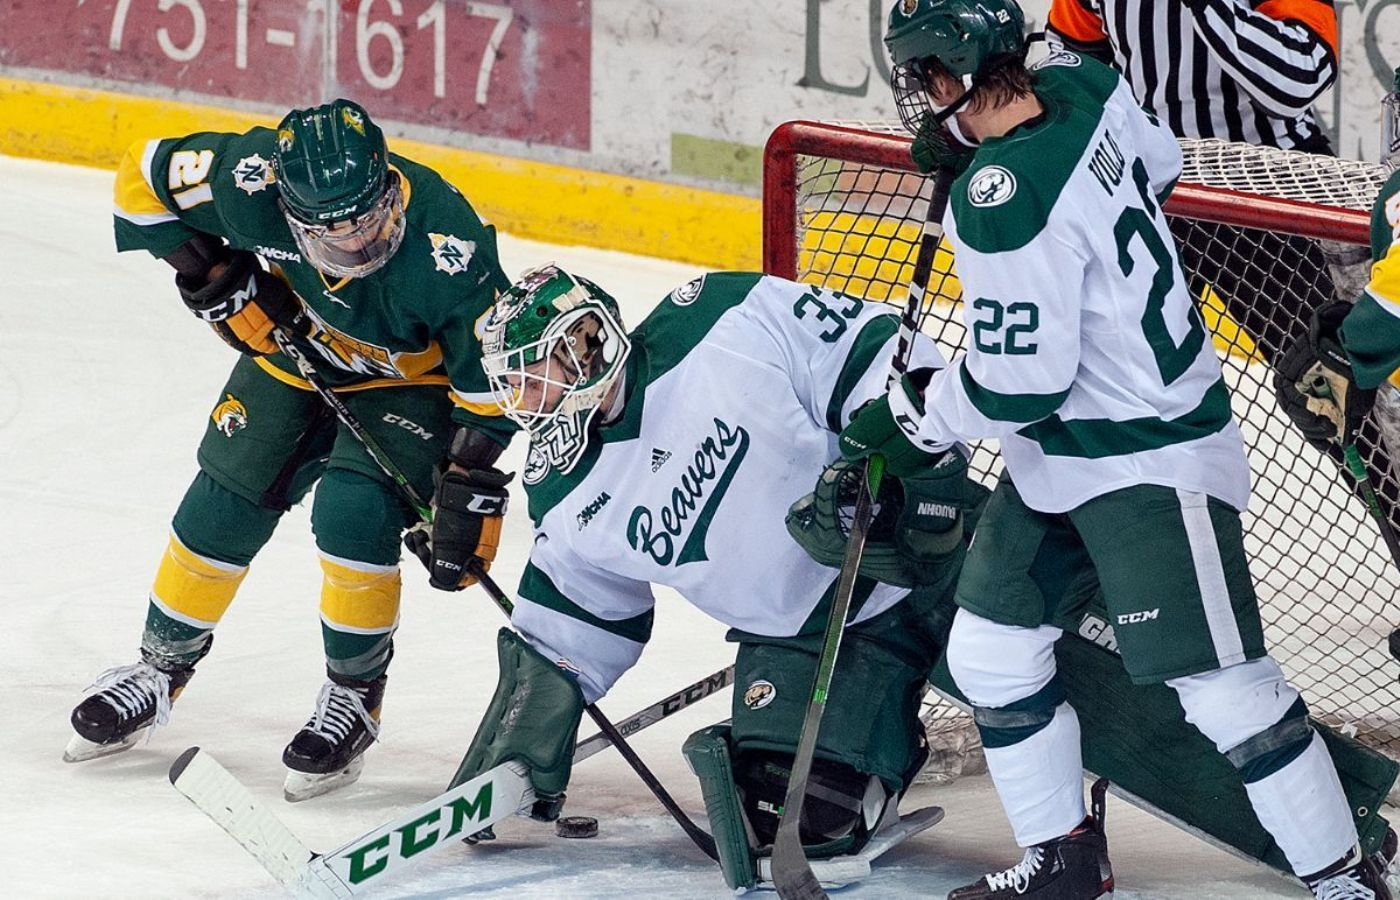 Four-goal third period lifts Northern Michigan to victory over Bemidji State